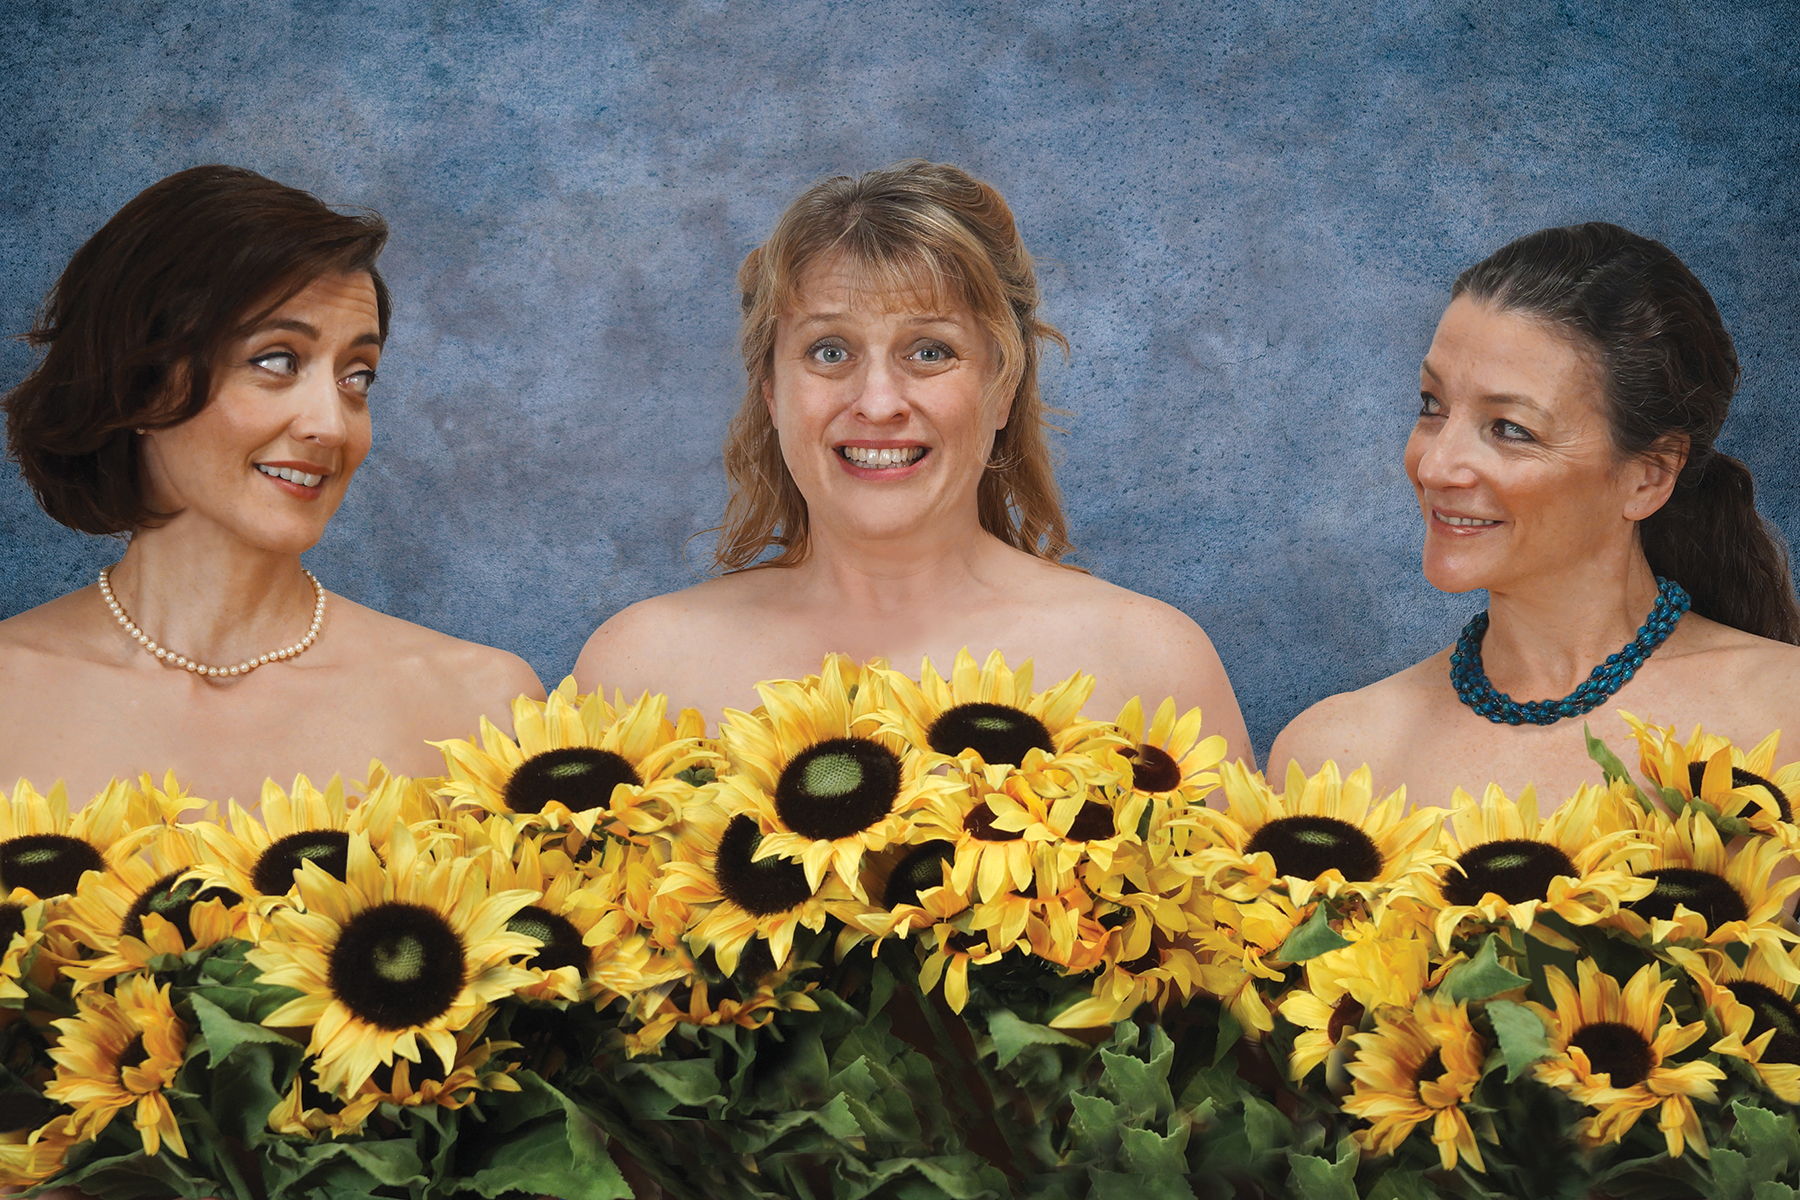 calendar-girls-sunflowers-6x4